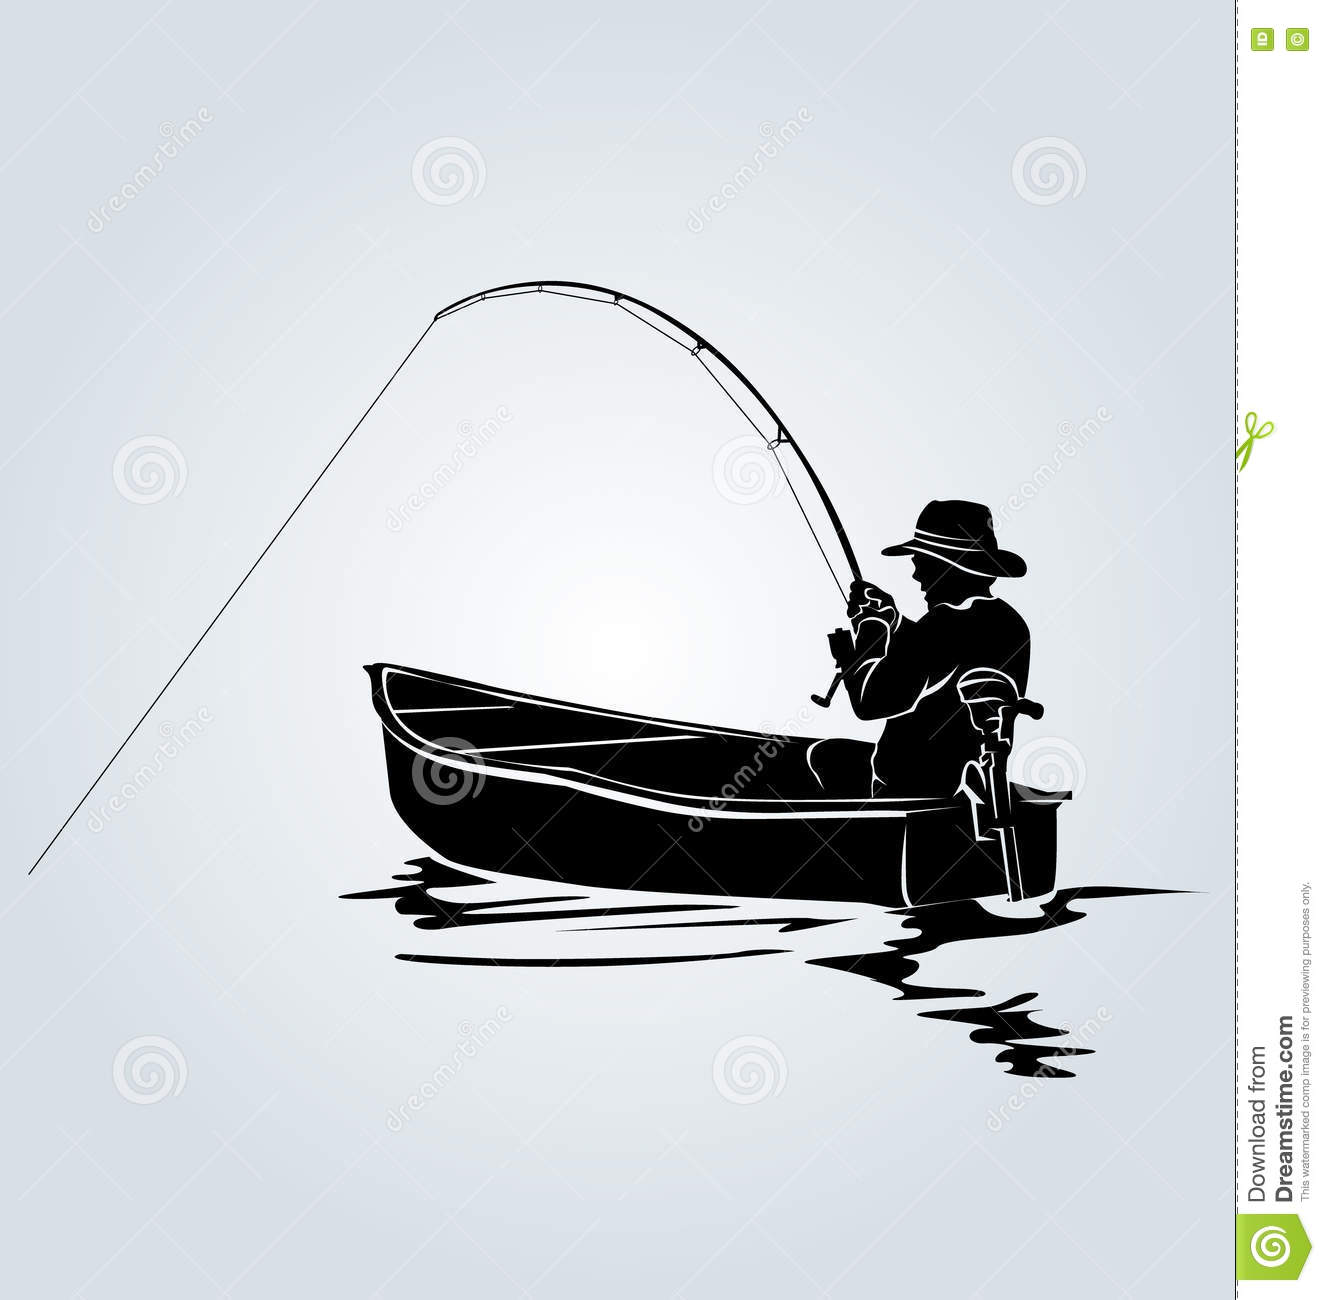 Download Vector Silhouette Of A Fisherman In A Boat Stock Vector Illustration Of Cast Beach 73729271